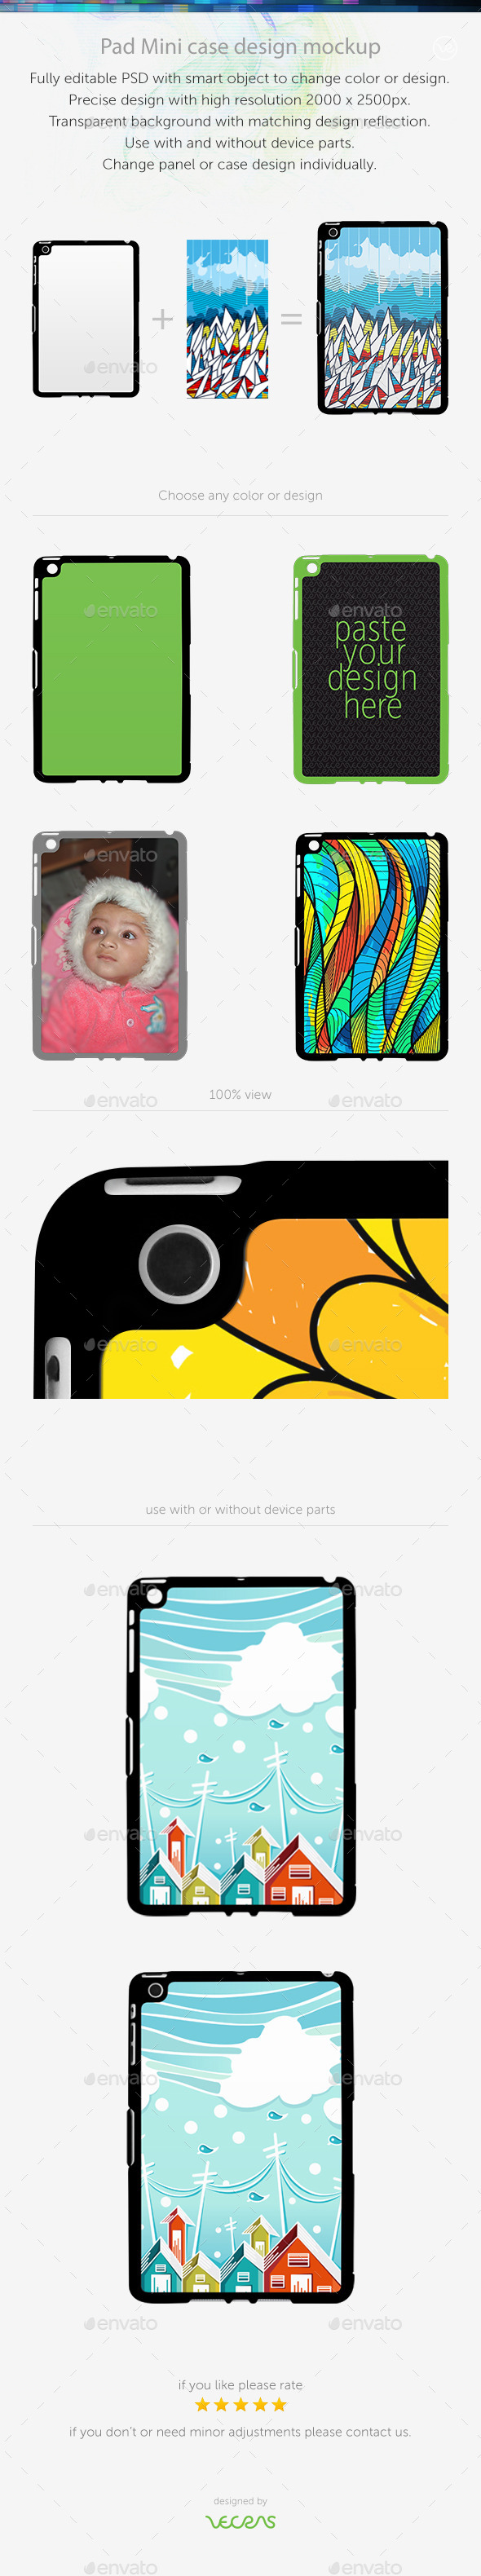 GraphicRiver Pad Mini Sticker Case Design Mockup 10401931